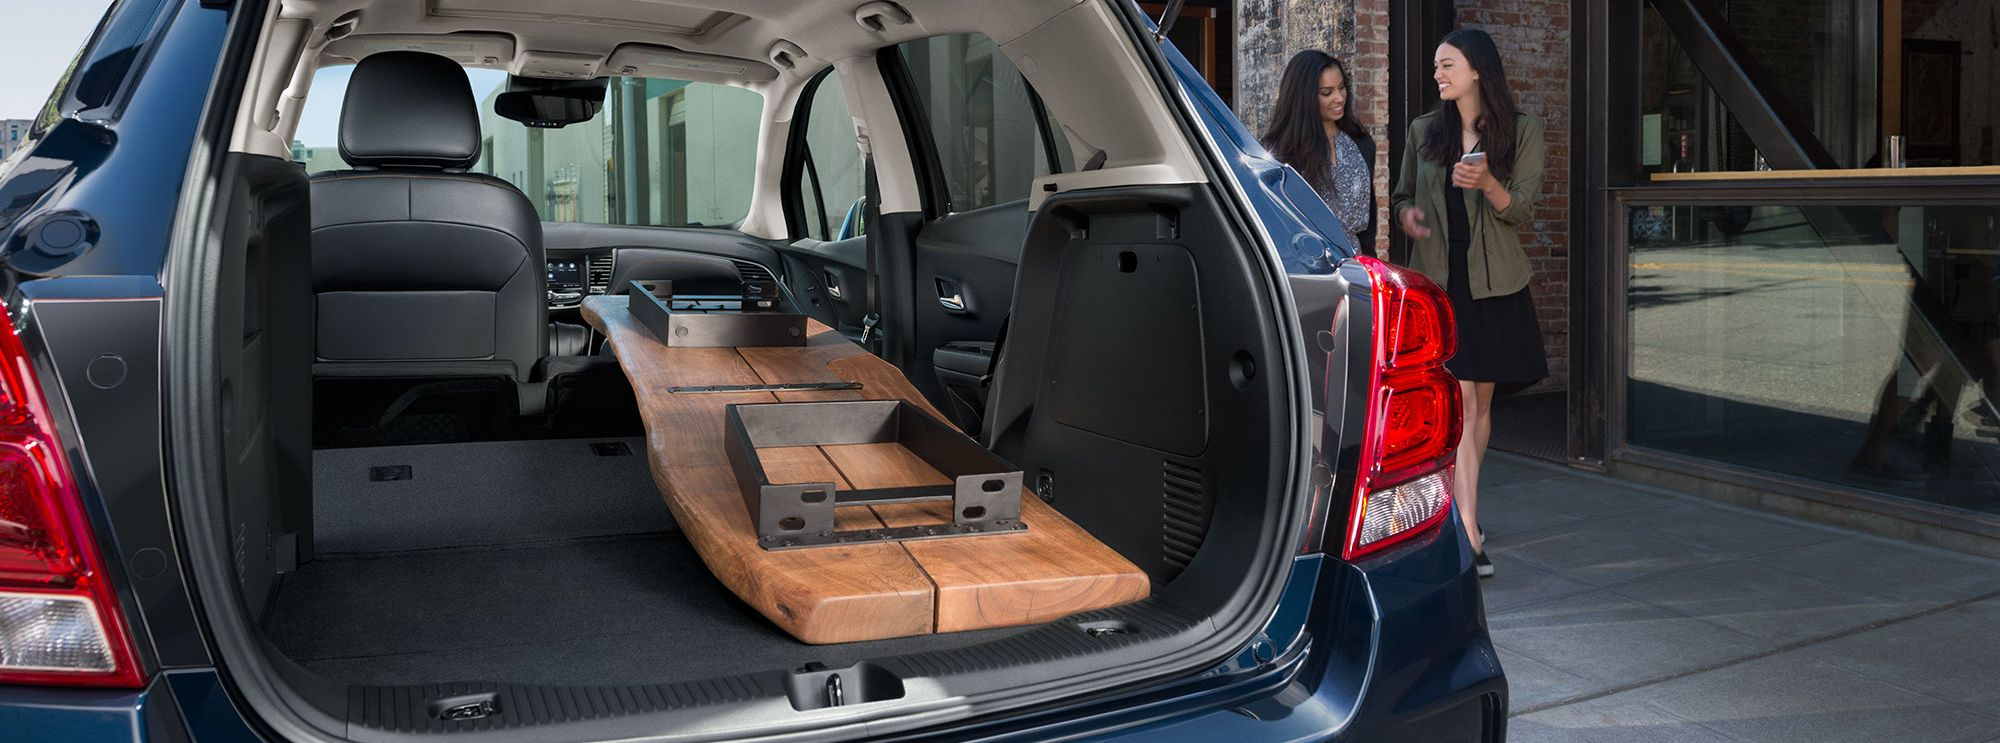 Generous Capacity Thanks to the Trax's Fold-Down Seating!